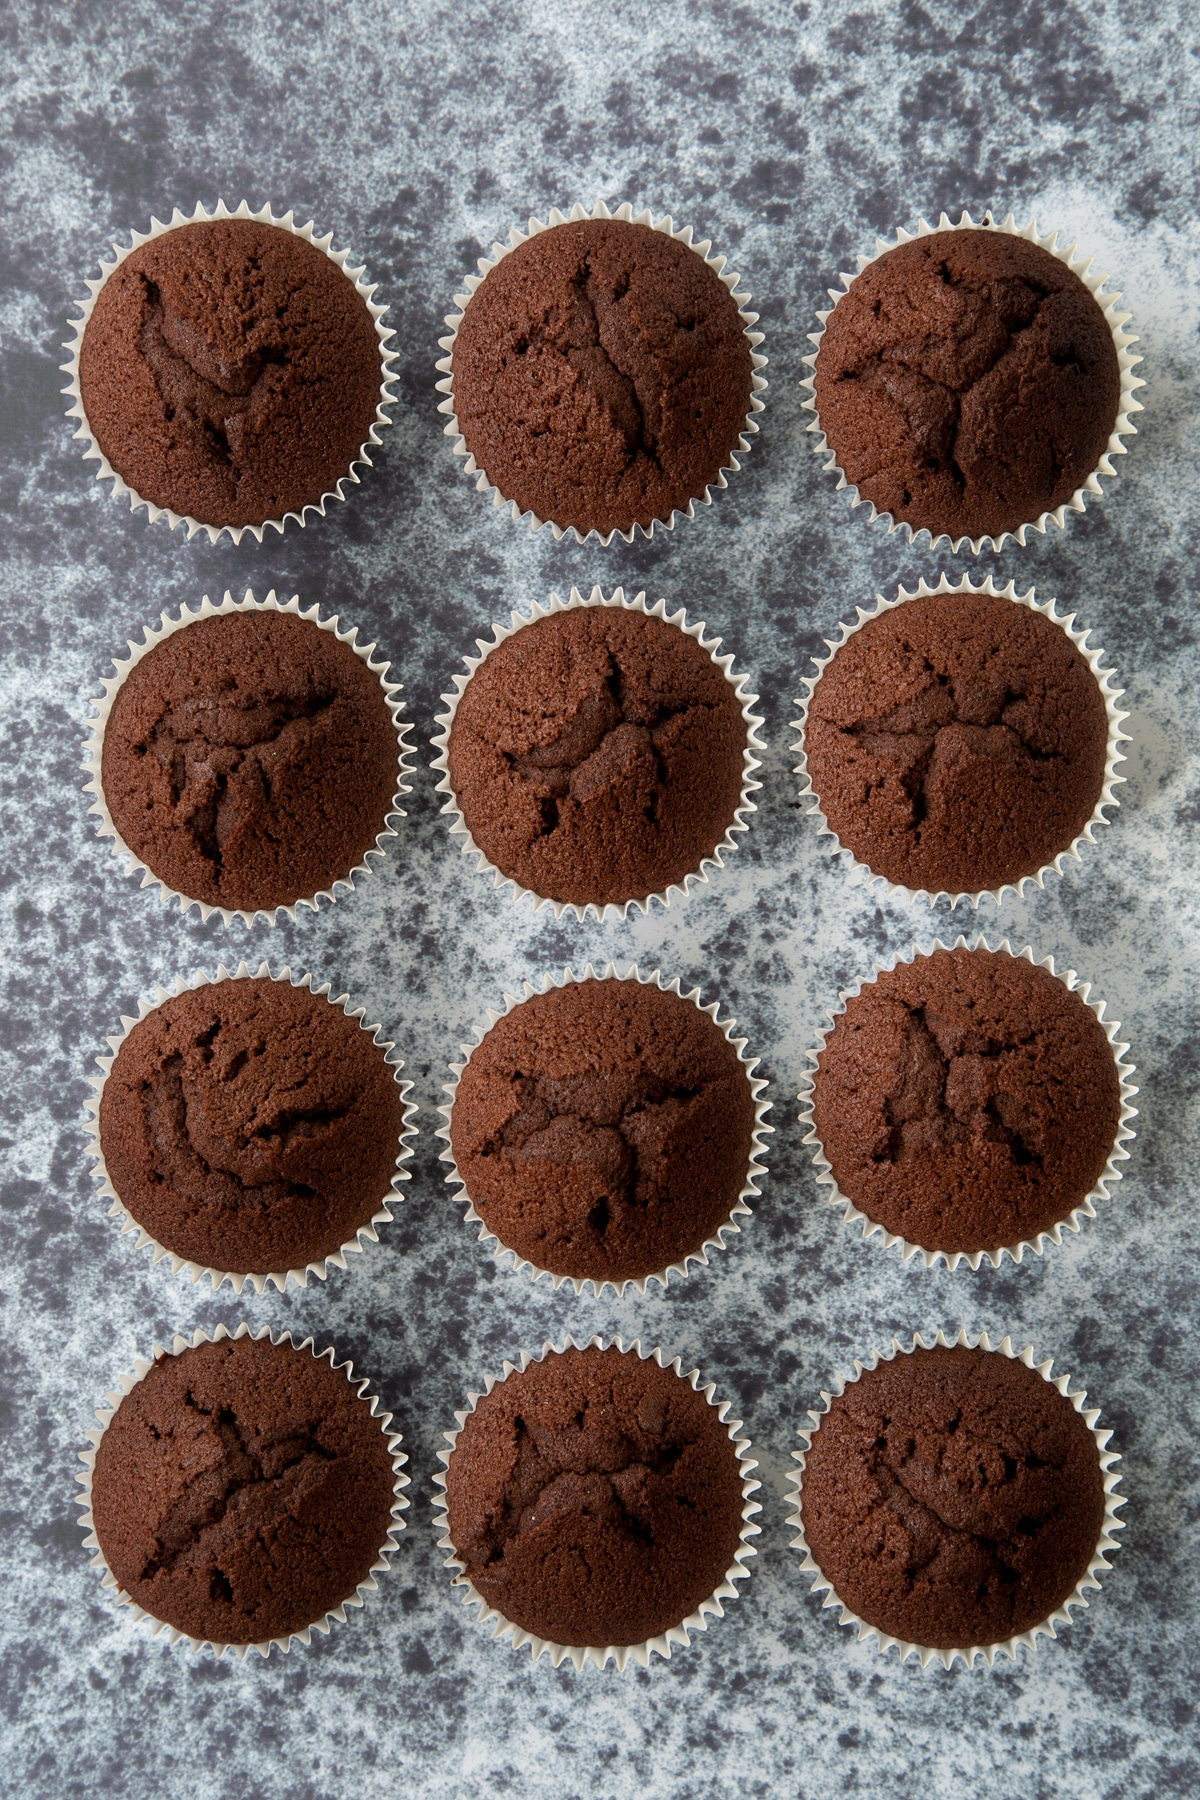 12 chocolate cupcakes on a dark background, shown from above.